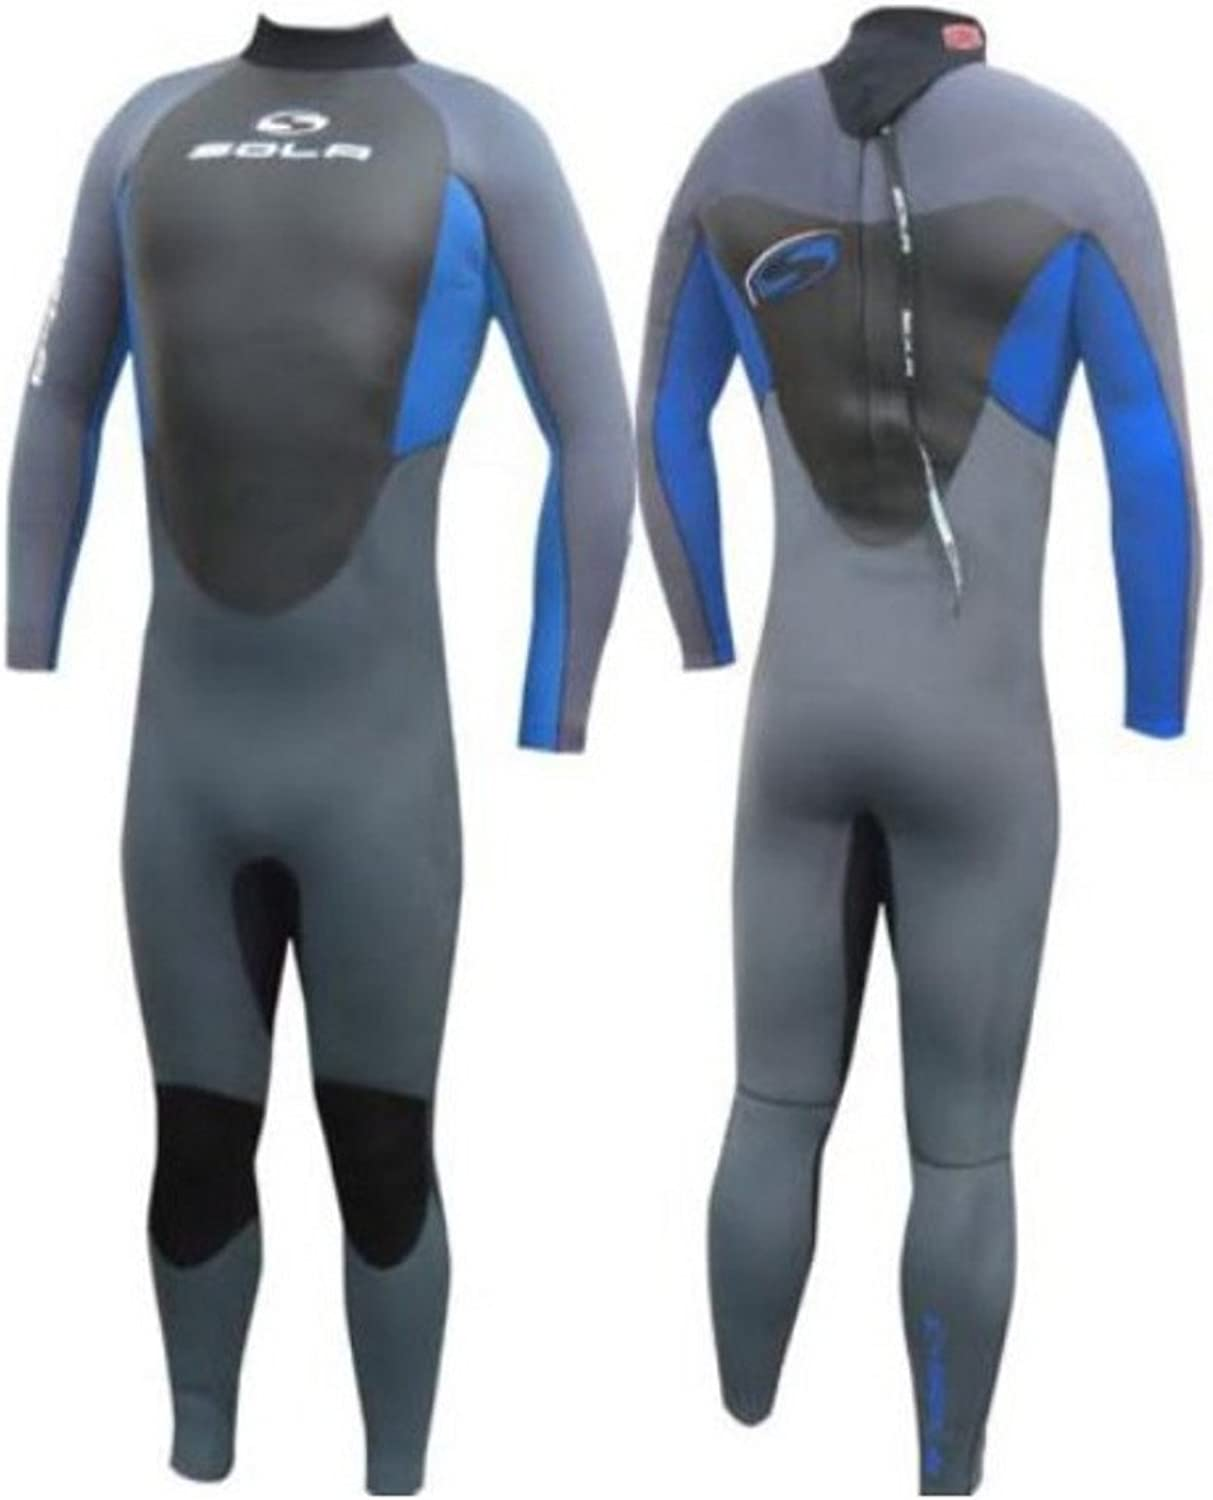 Sola Fusion GBS 5mm Neoprene Mens Full Winter Wetsuit surfing sailing